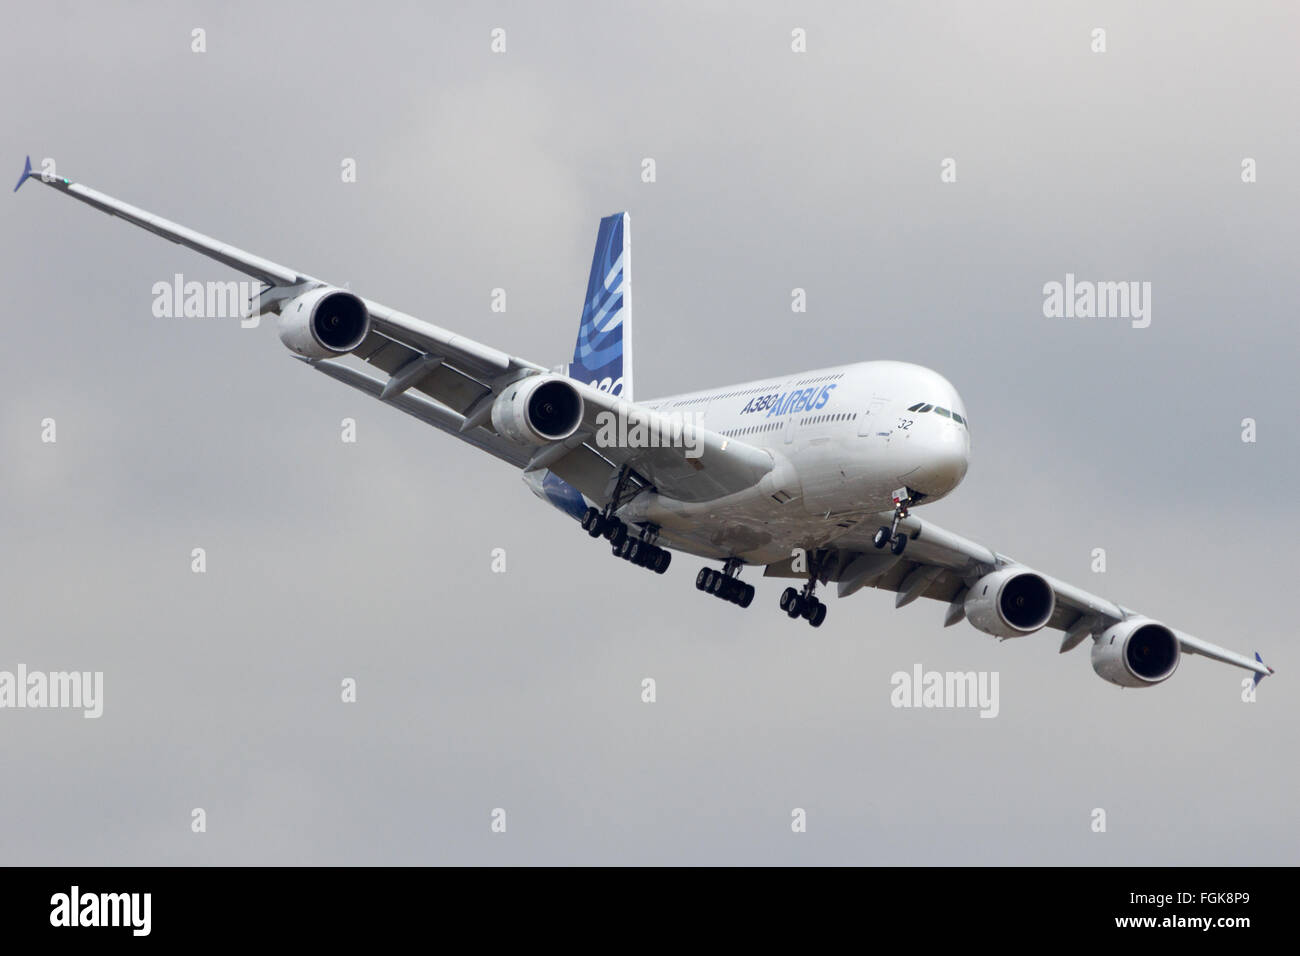 Airbus A380 turning to land at the 51st International Paris Air show. - Stock Image